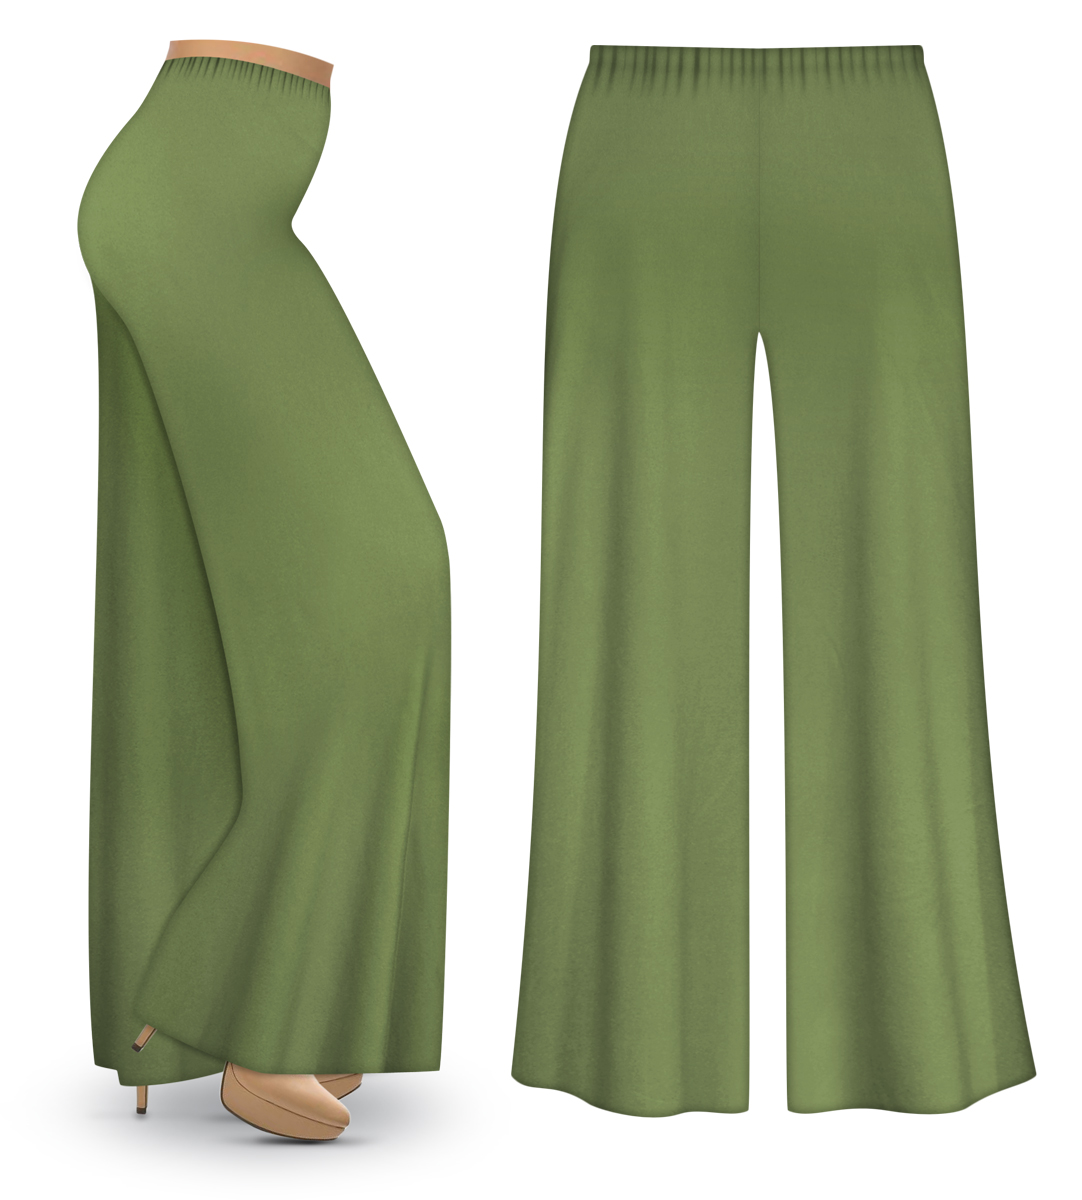 CLEARANCE! Olive Green Wide Leg Palazzo Pants in Slinky, Velvet or ...